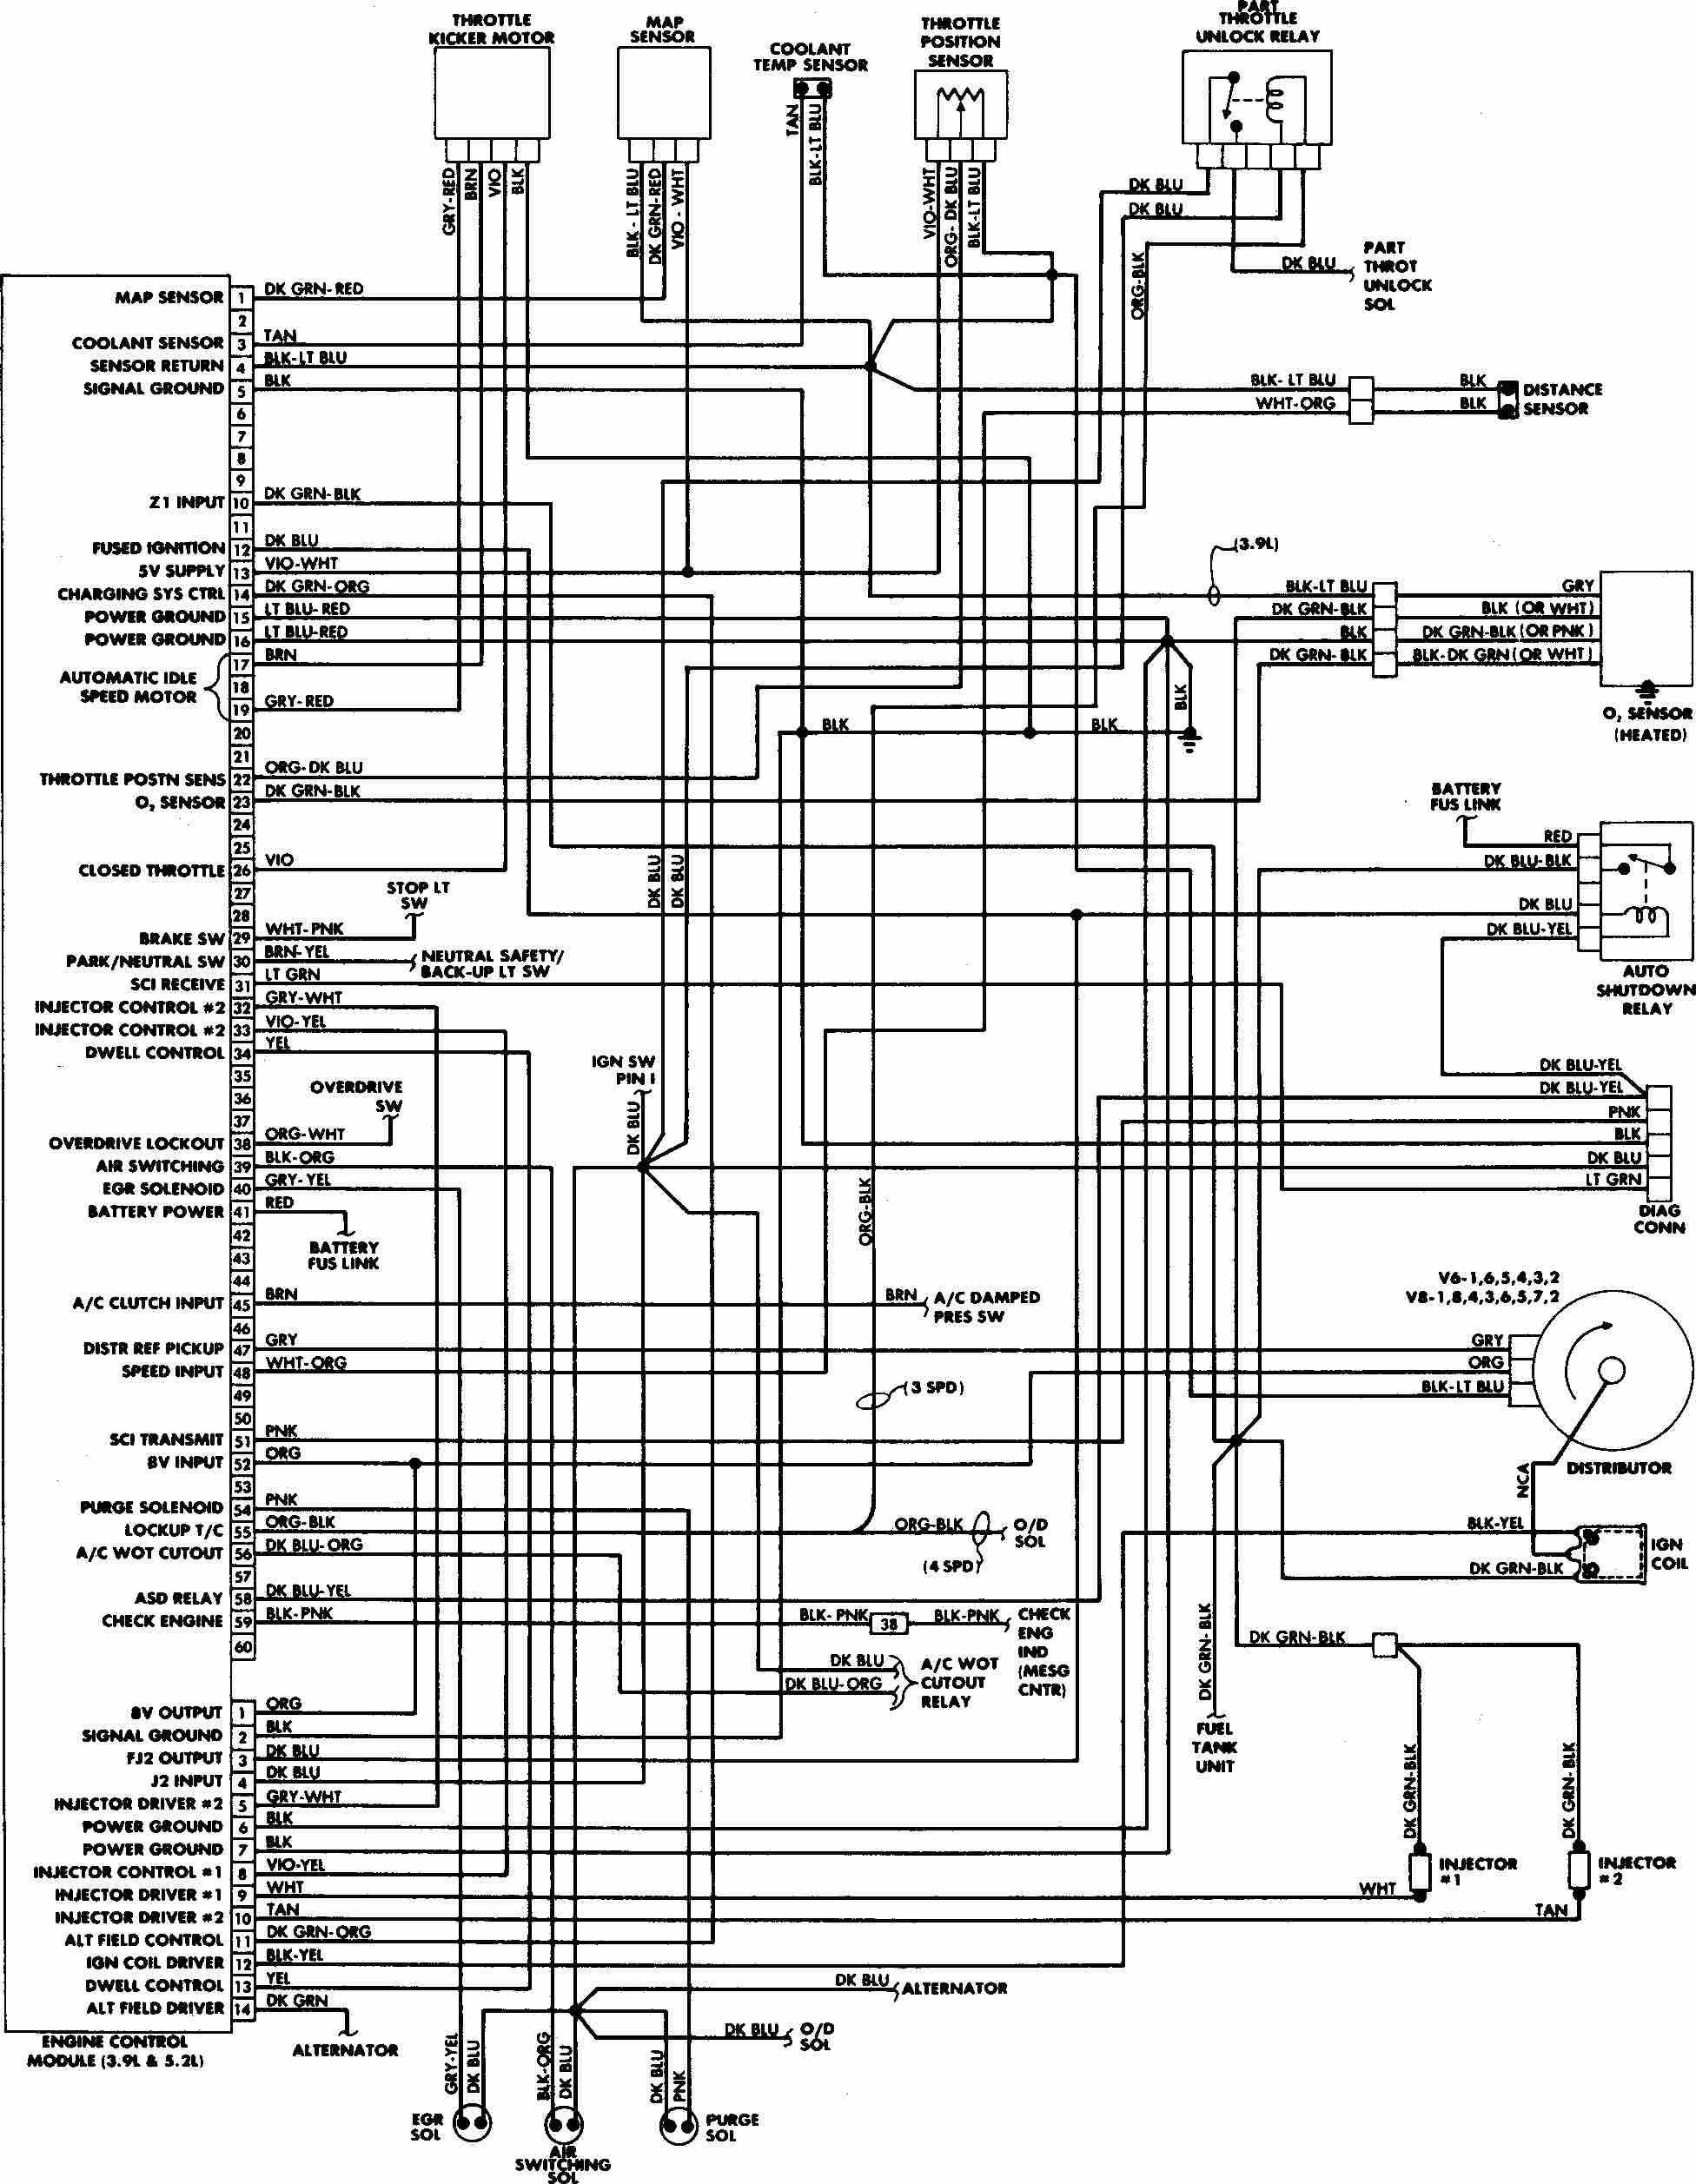 gambar diagram of musical colors diagram free engine image for jpeg 96 dodge neon 95 neon engine diagram electrical wiring diagram house